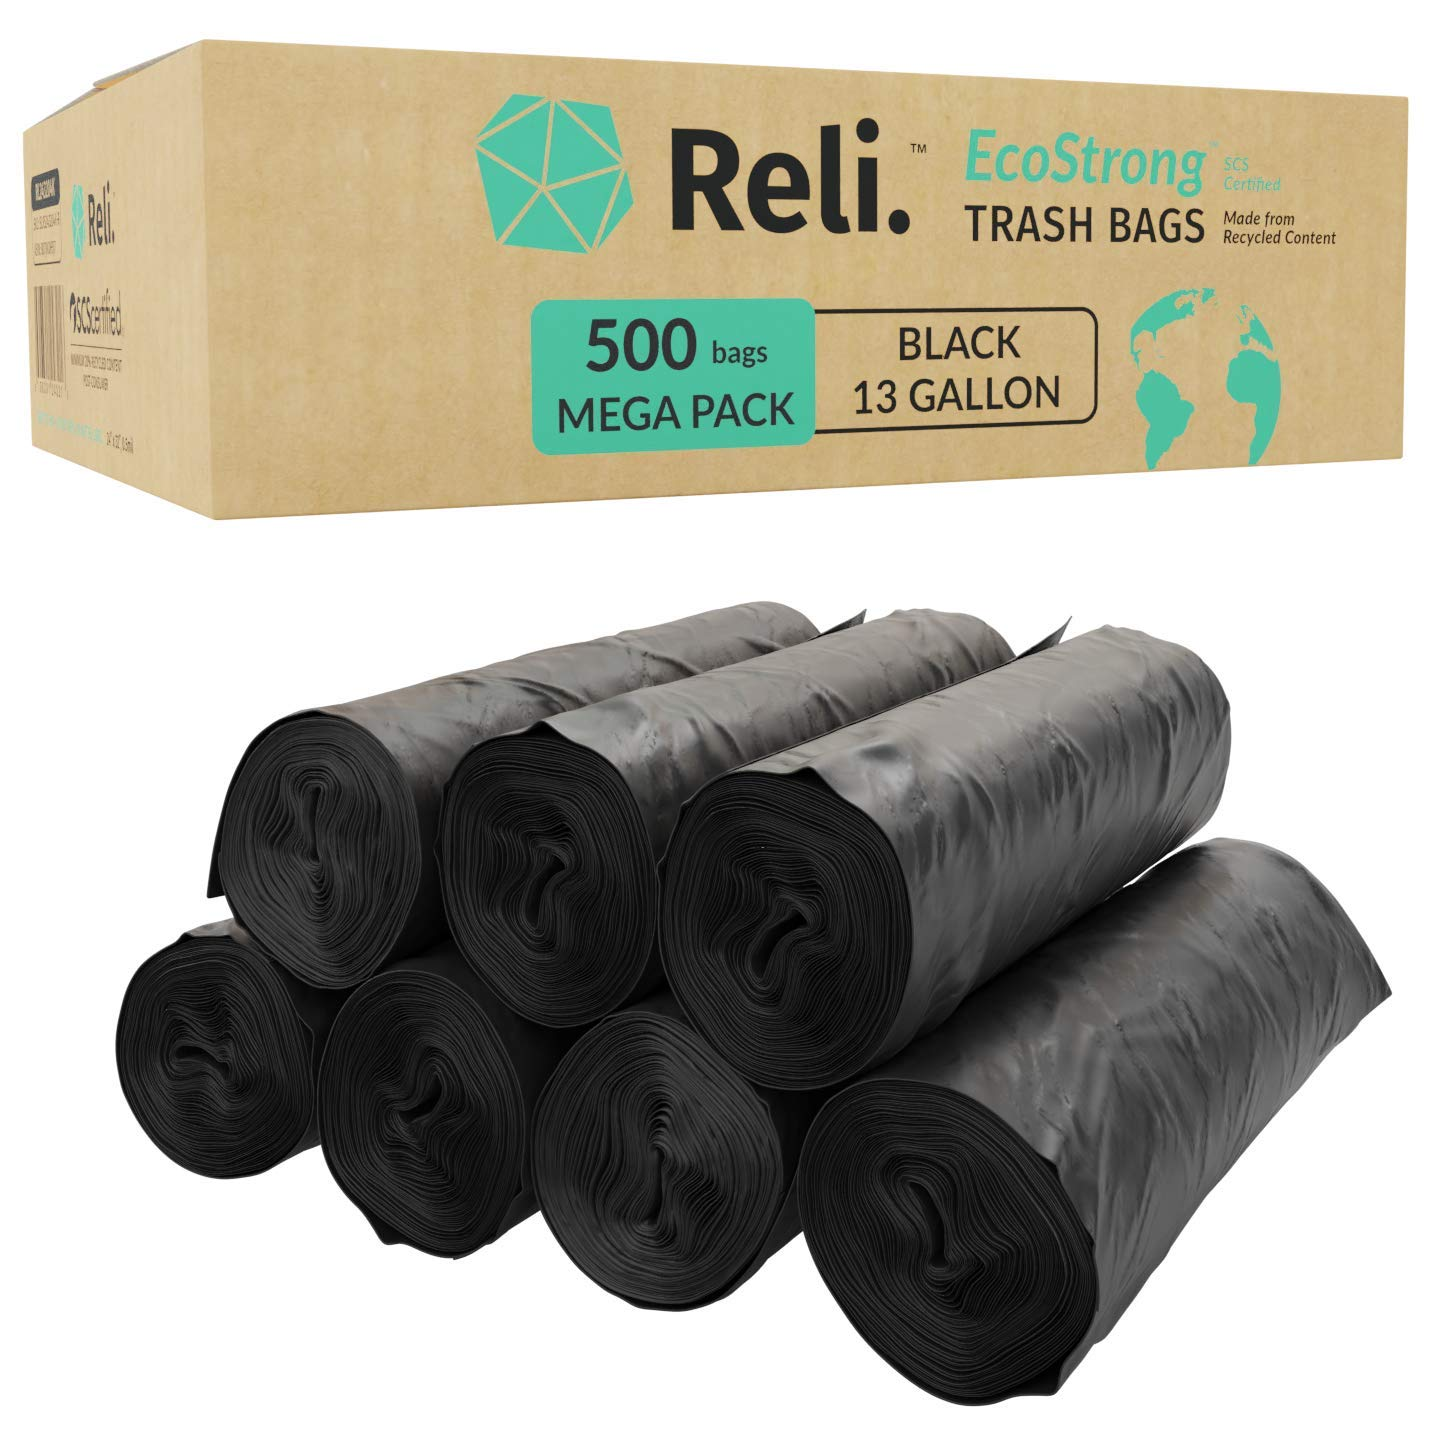 Reli. EcoStrong 13 Gallon Trash Bags (500 Count Bulk) Eco-Friendly Recyclable - Black Garbage Bags 13 Gallon - 16 Gallon Capacity, Made of Recycled Material by Reli.